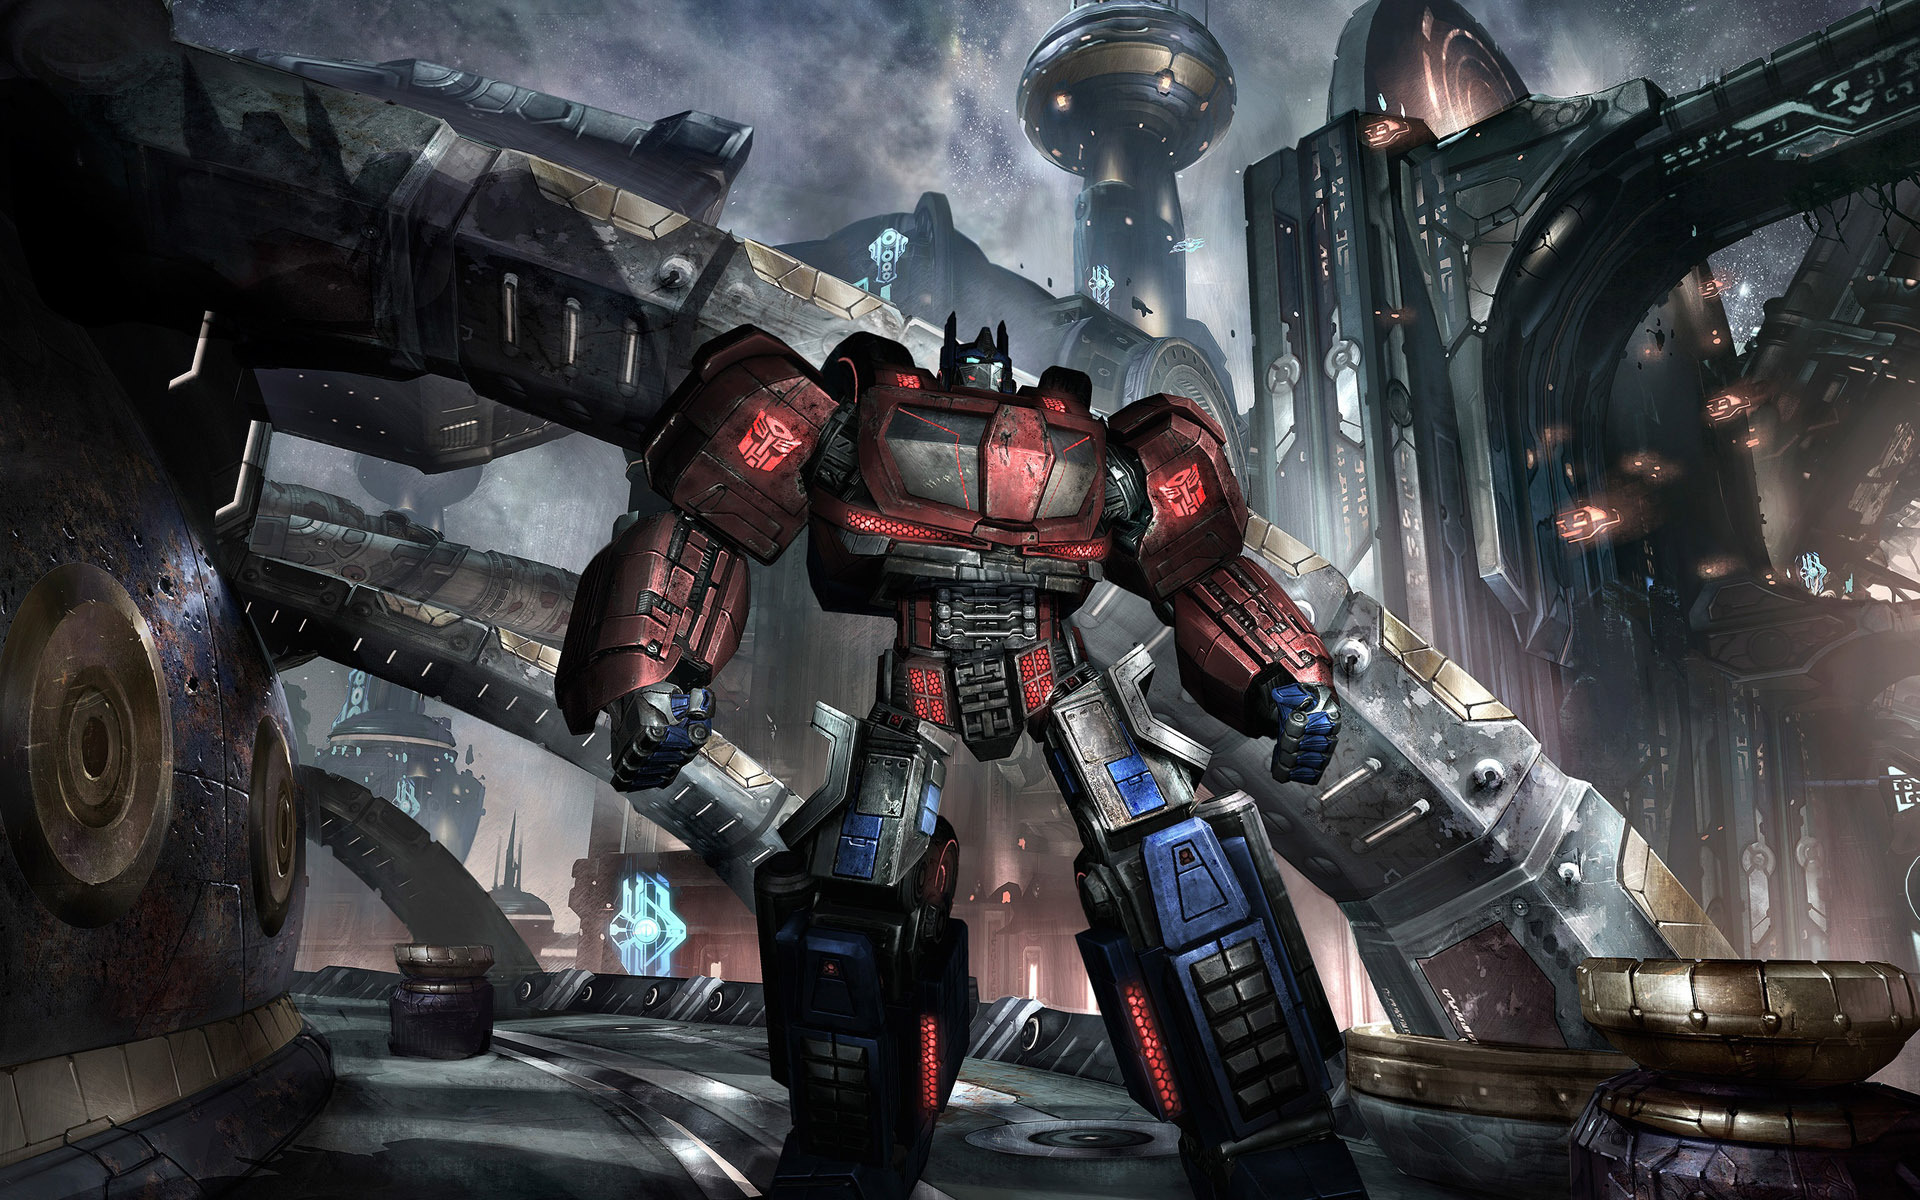 Transformers Fall Of Cybertron 4k Wallpaper Transformers Video Games Optimus Prime Autobots